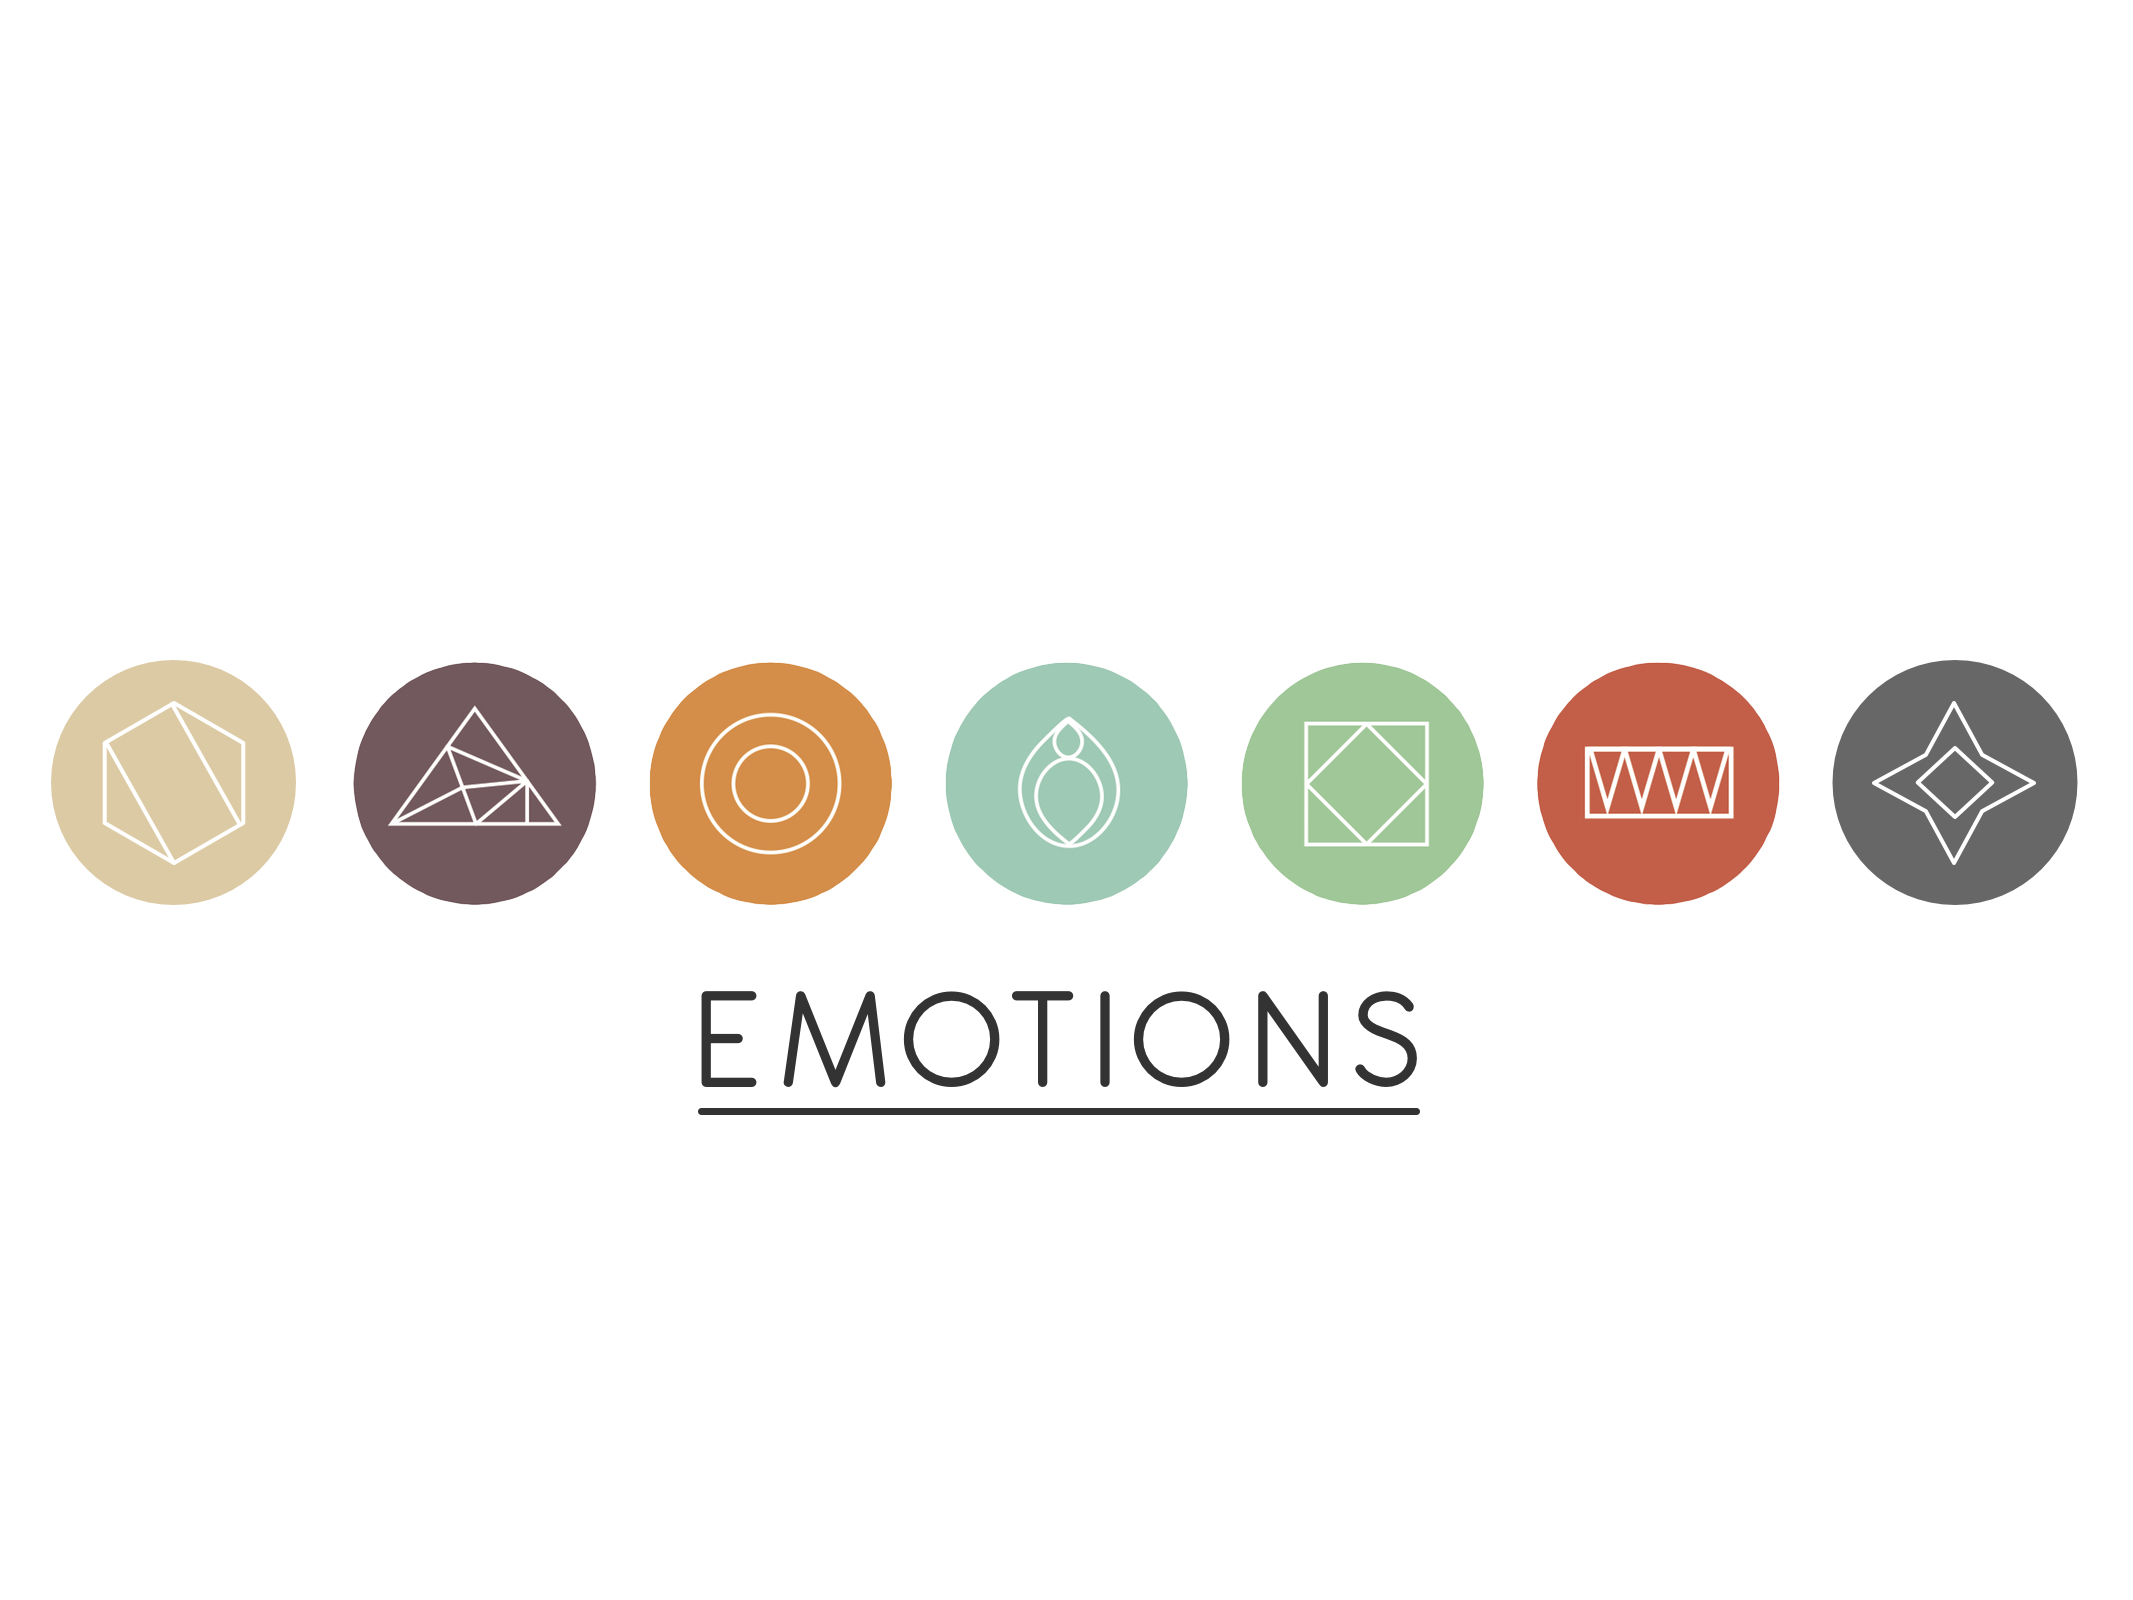 EMOTIONS   NOV 6 - DEC 18